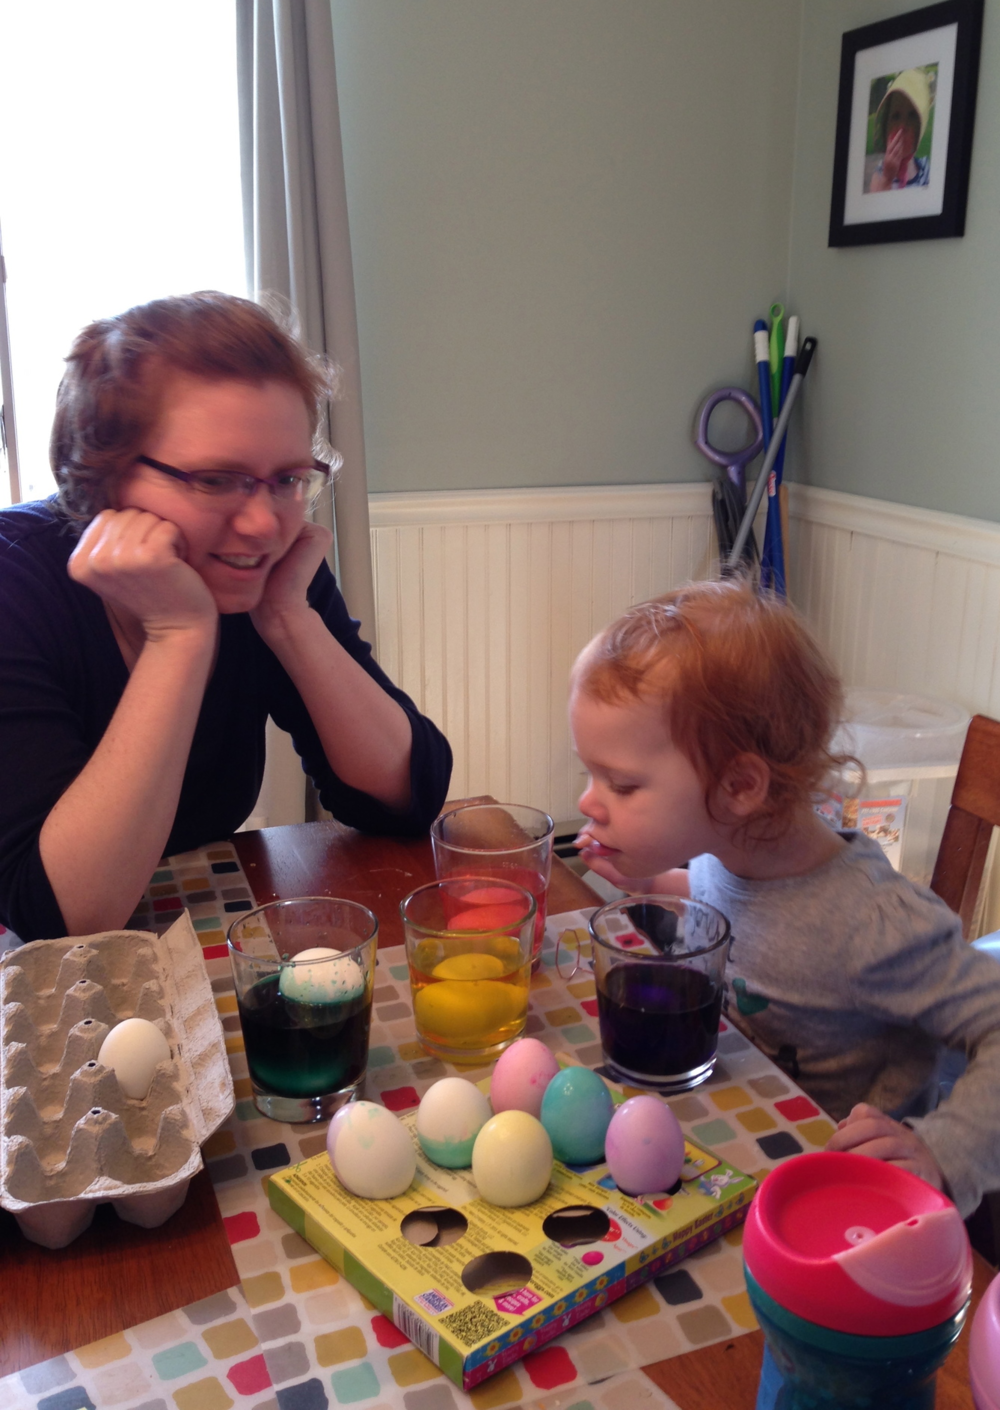 Dyeing Eggs - Ms. Cleaver Chronicles